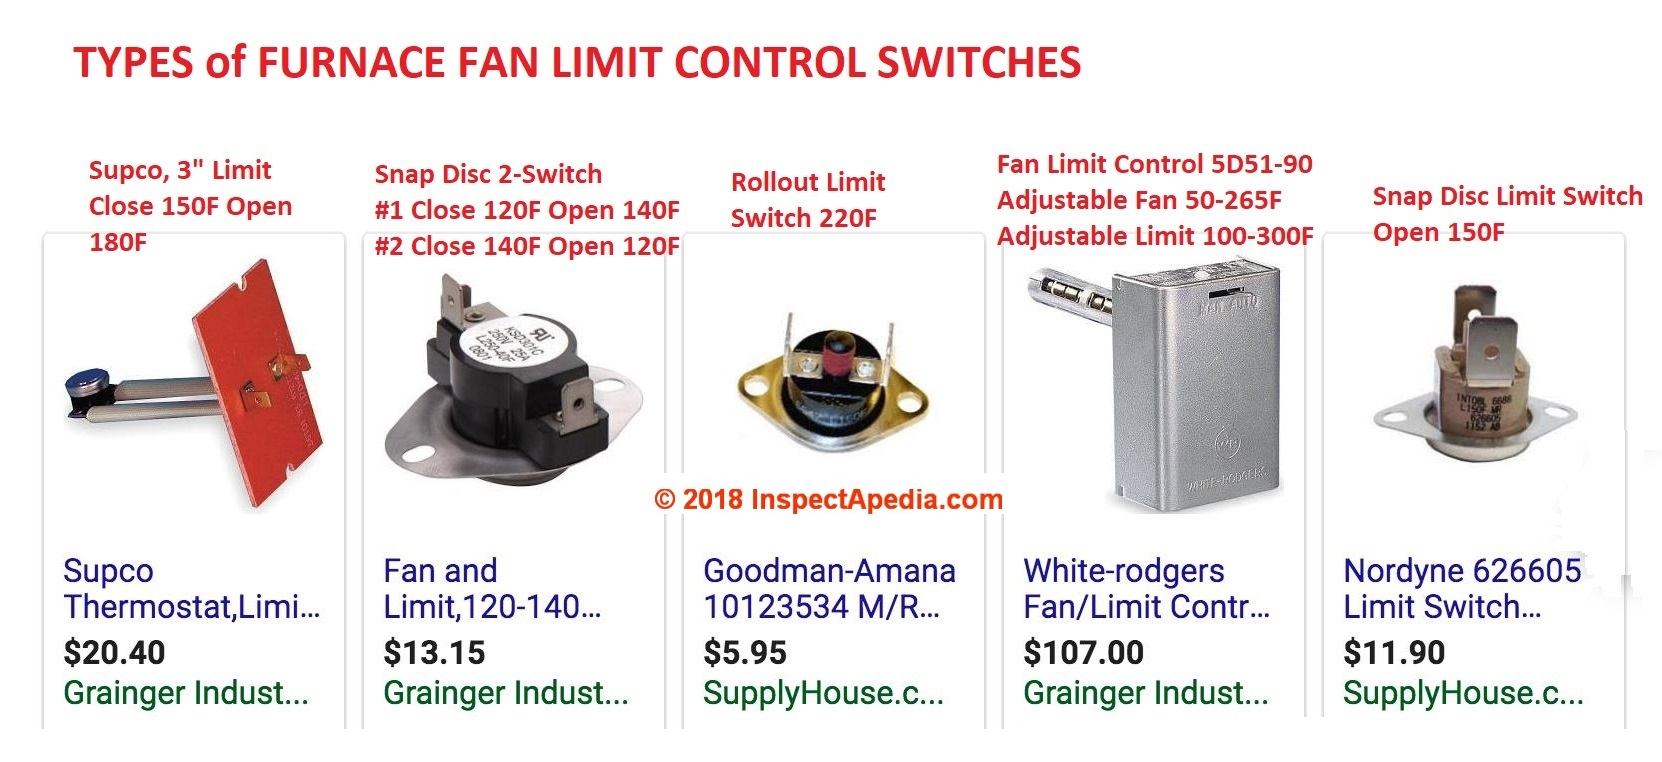 Furnace Fan Limit Switch How Does A Work To Wiring Diagram Terminal 5 Types Of Control Switches C